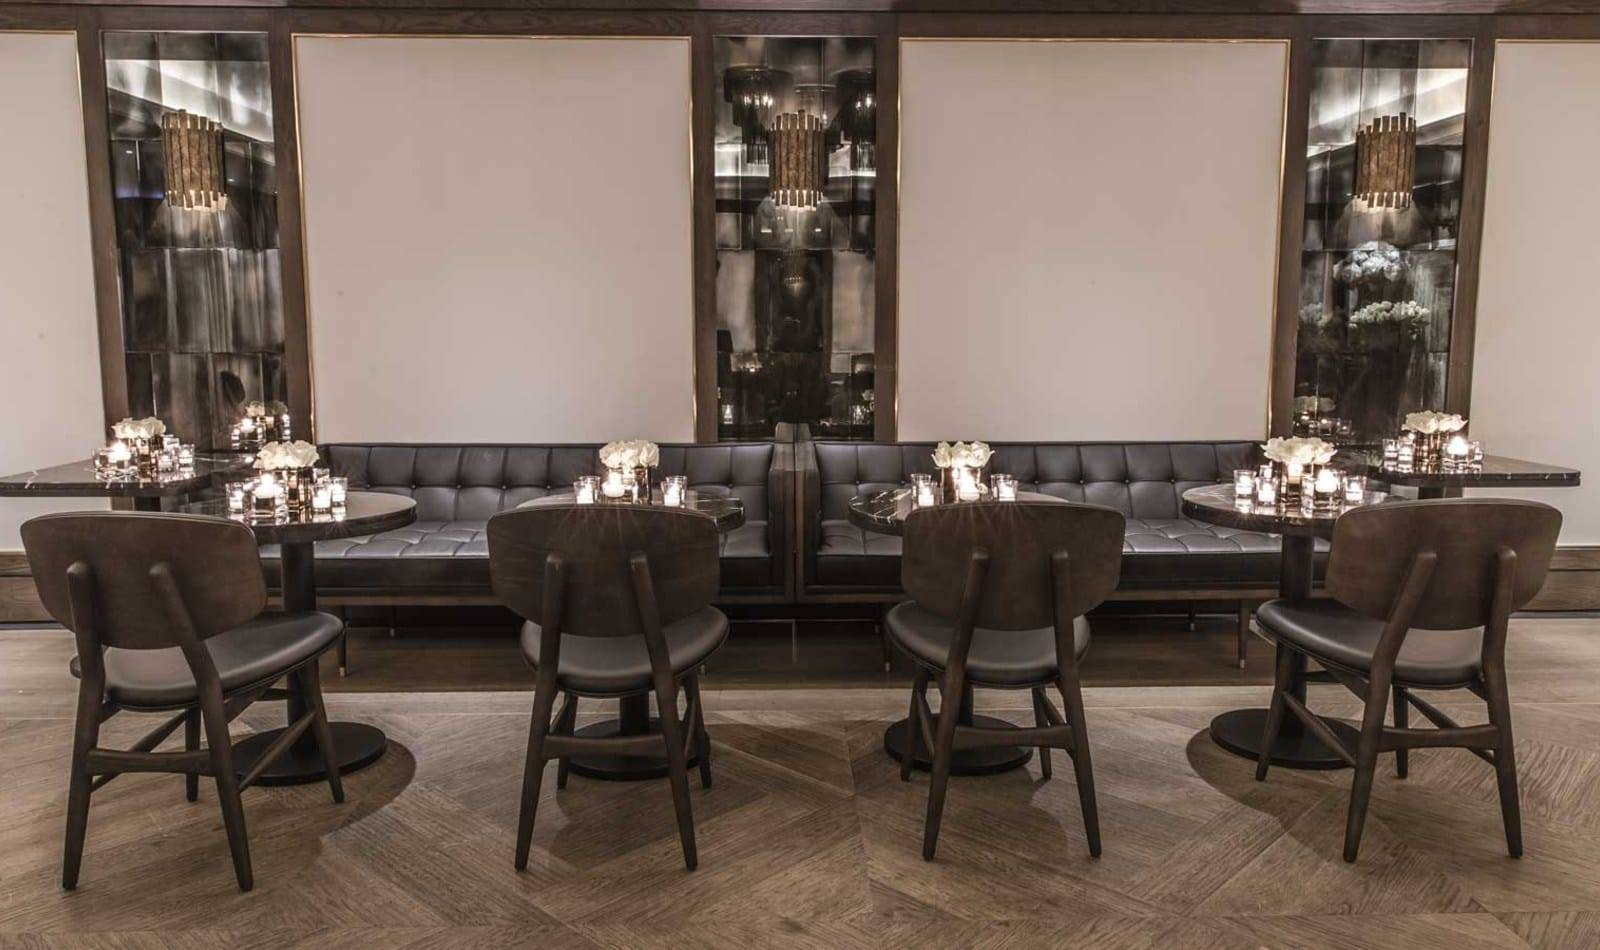 PrivateDiningRoom1 1600px w 1 - REVIEW: The Magnificent May Fair Hotel